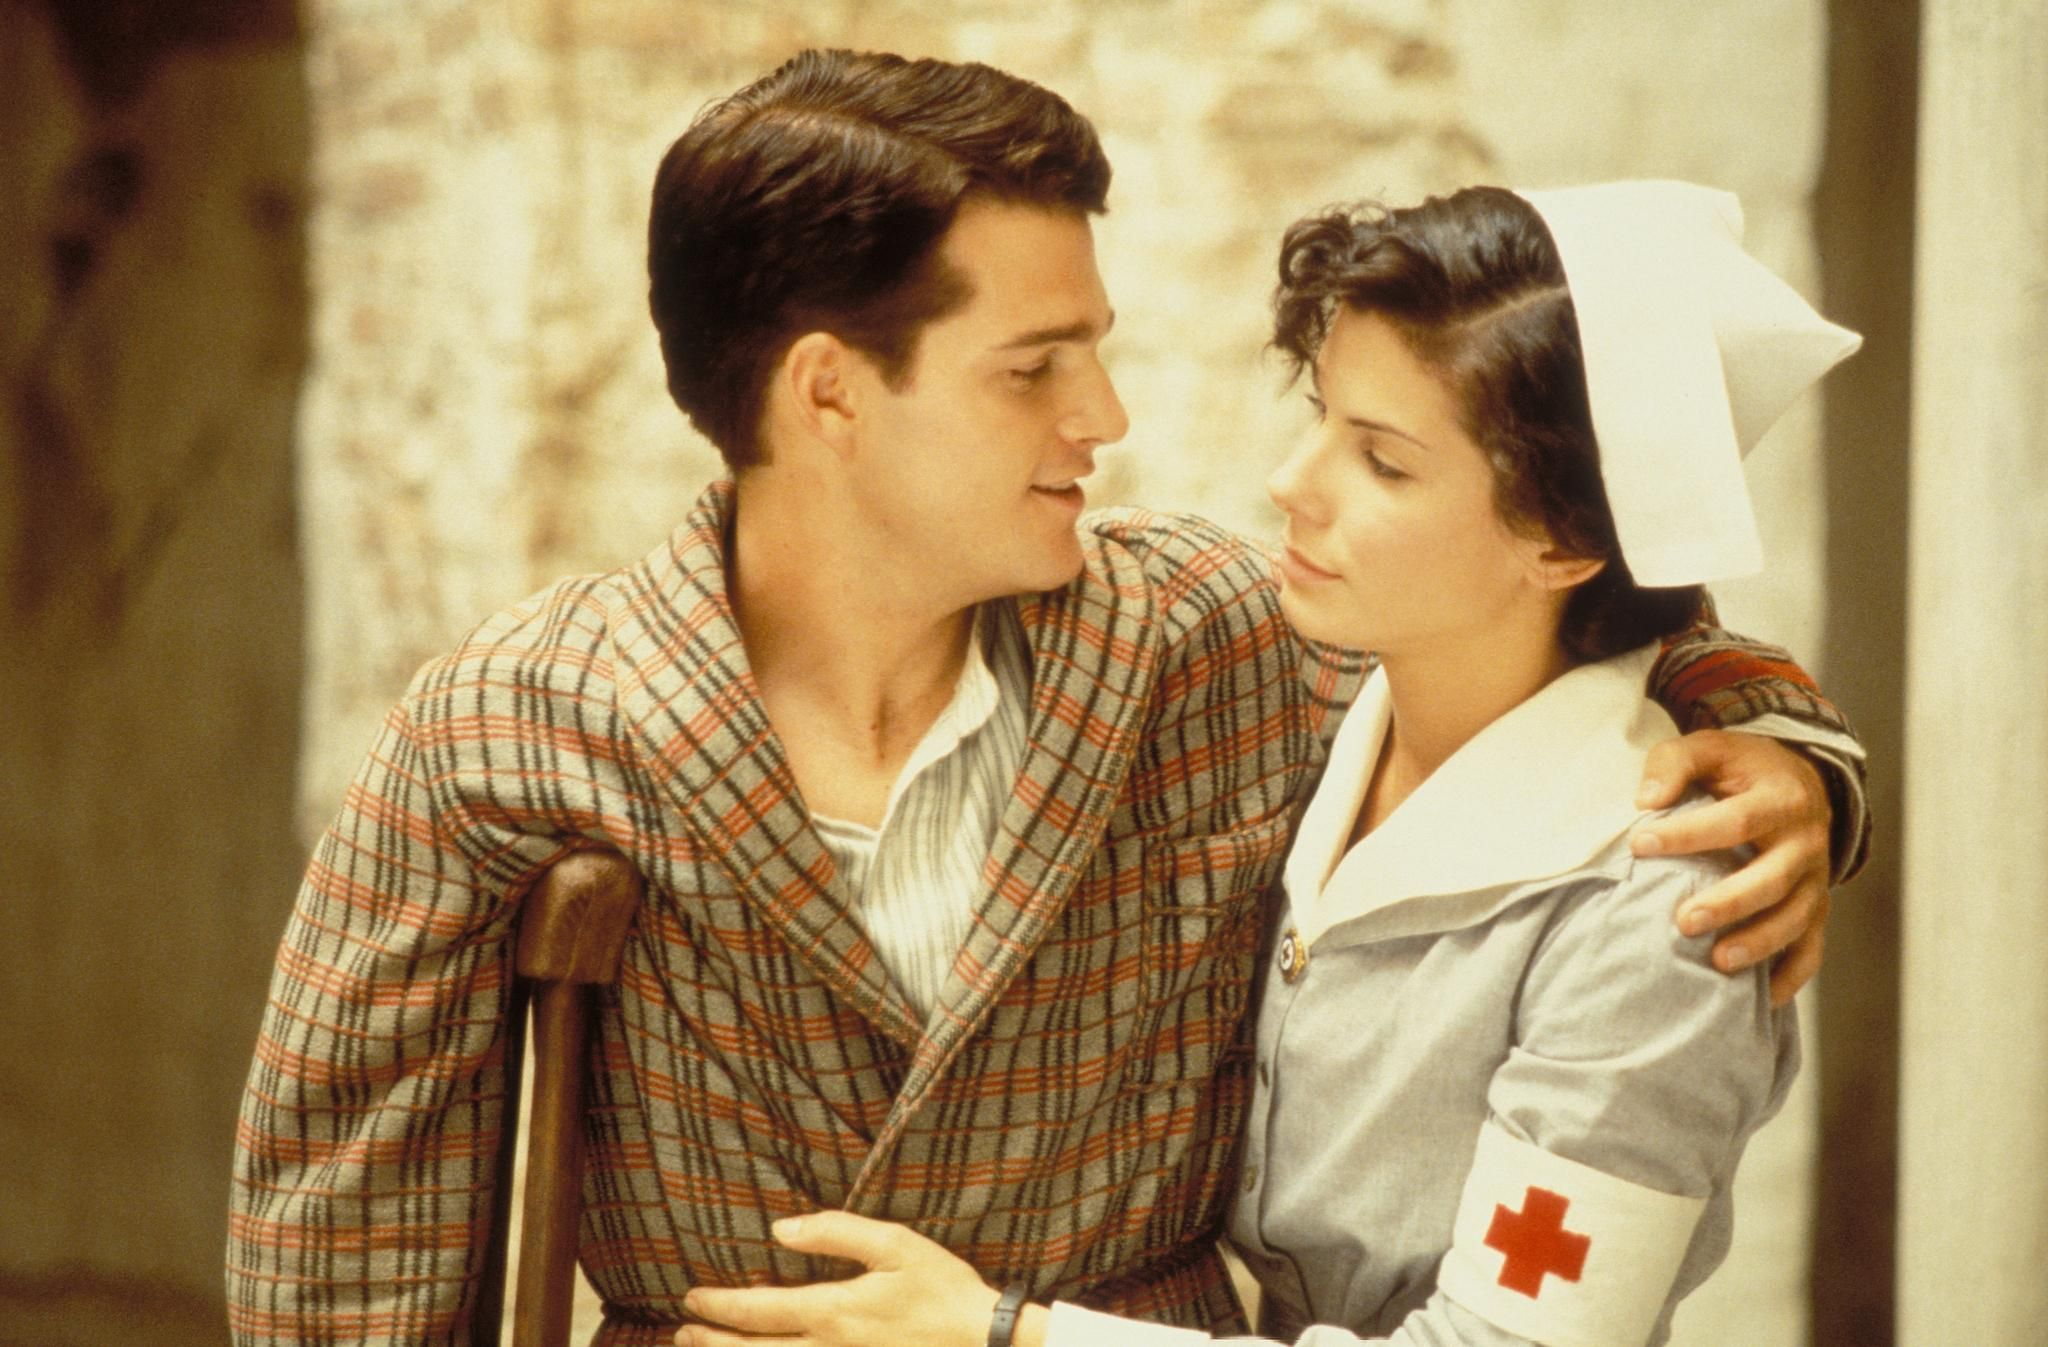 5. Agnes von Kurowsky in 'In Love and War'